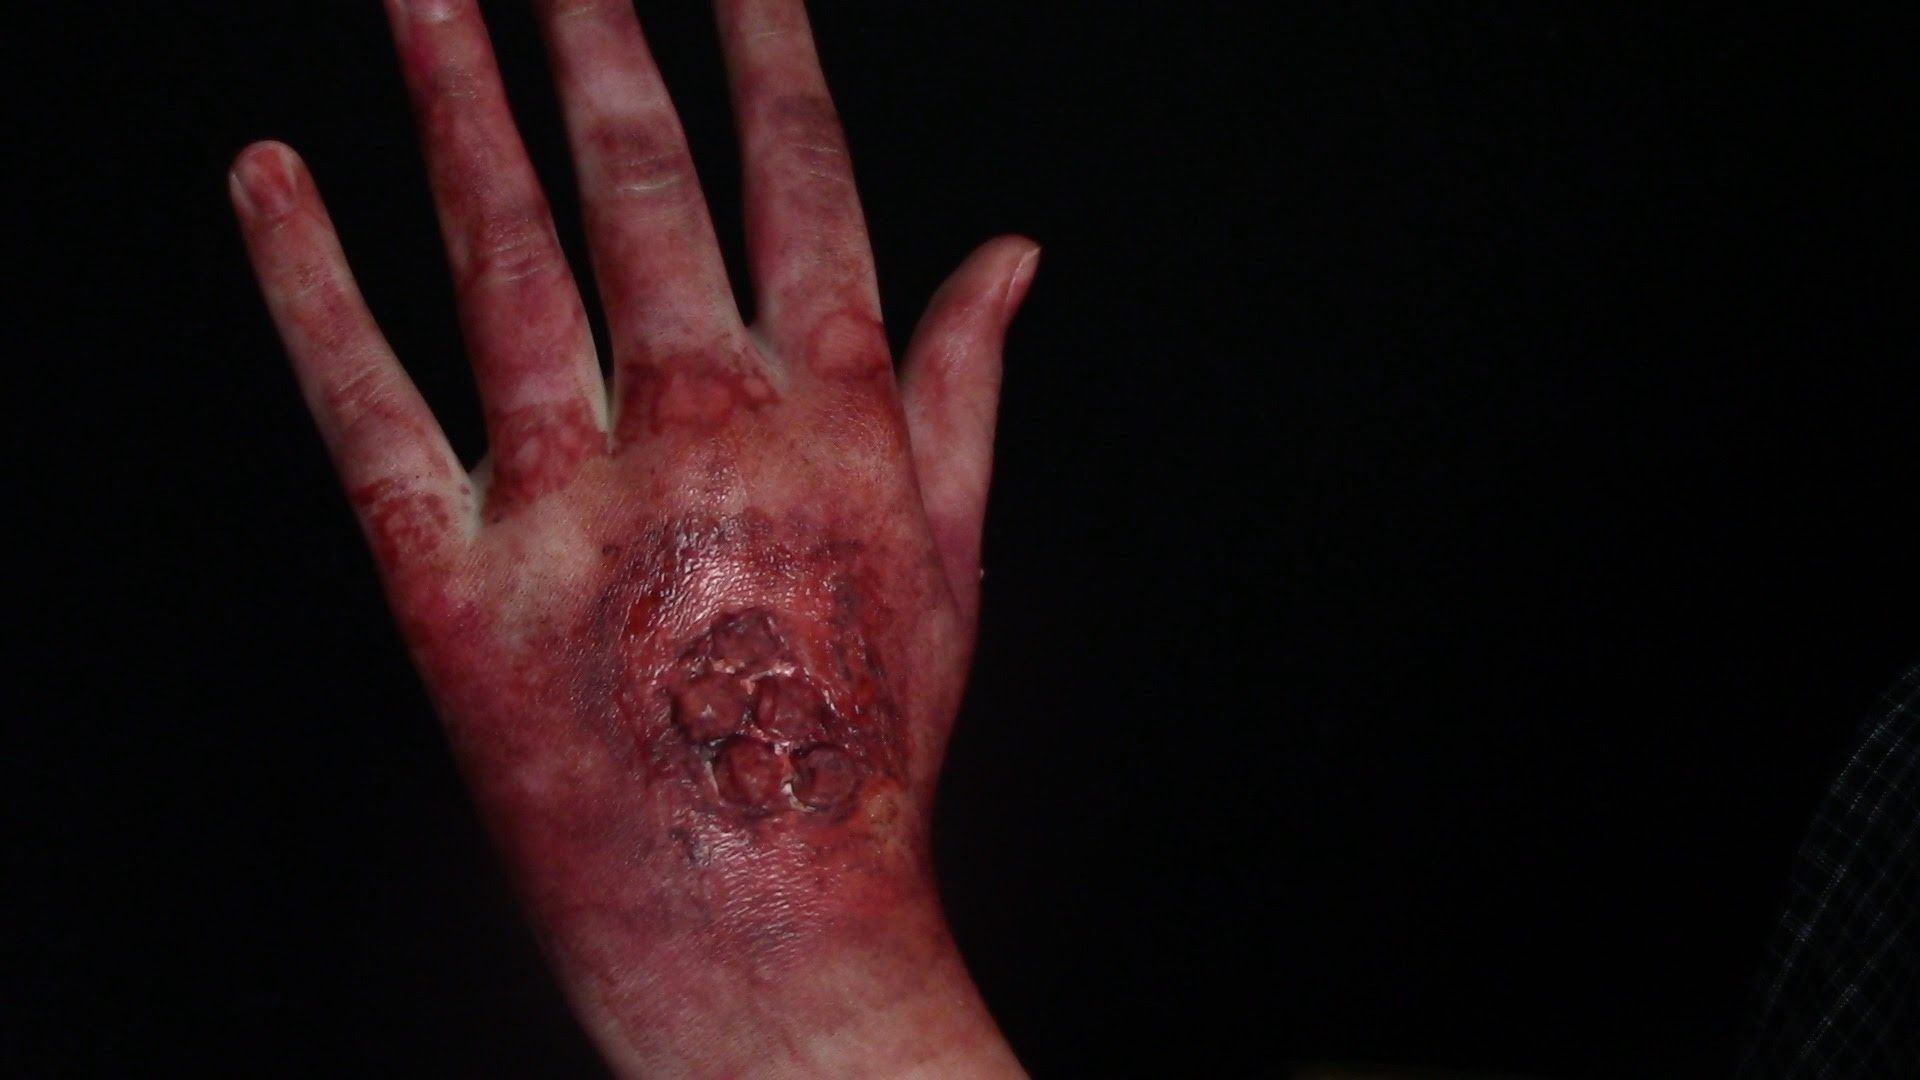 Diy infected blisters sfx tutorial using bubble wrap liquid latex diy infected blisters sfx tutorial using bubble wrap liquid latex fake blood and baditri Choice Image